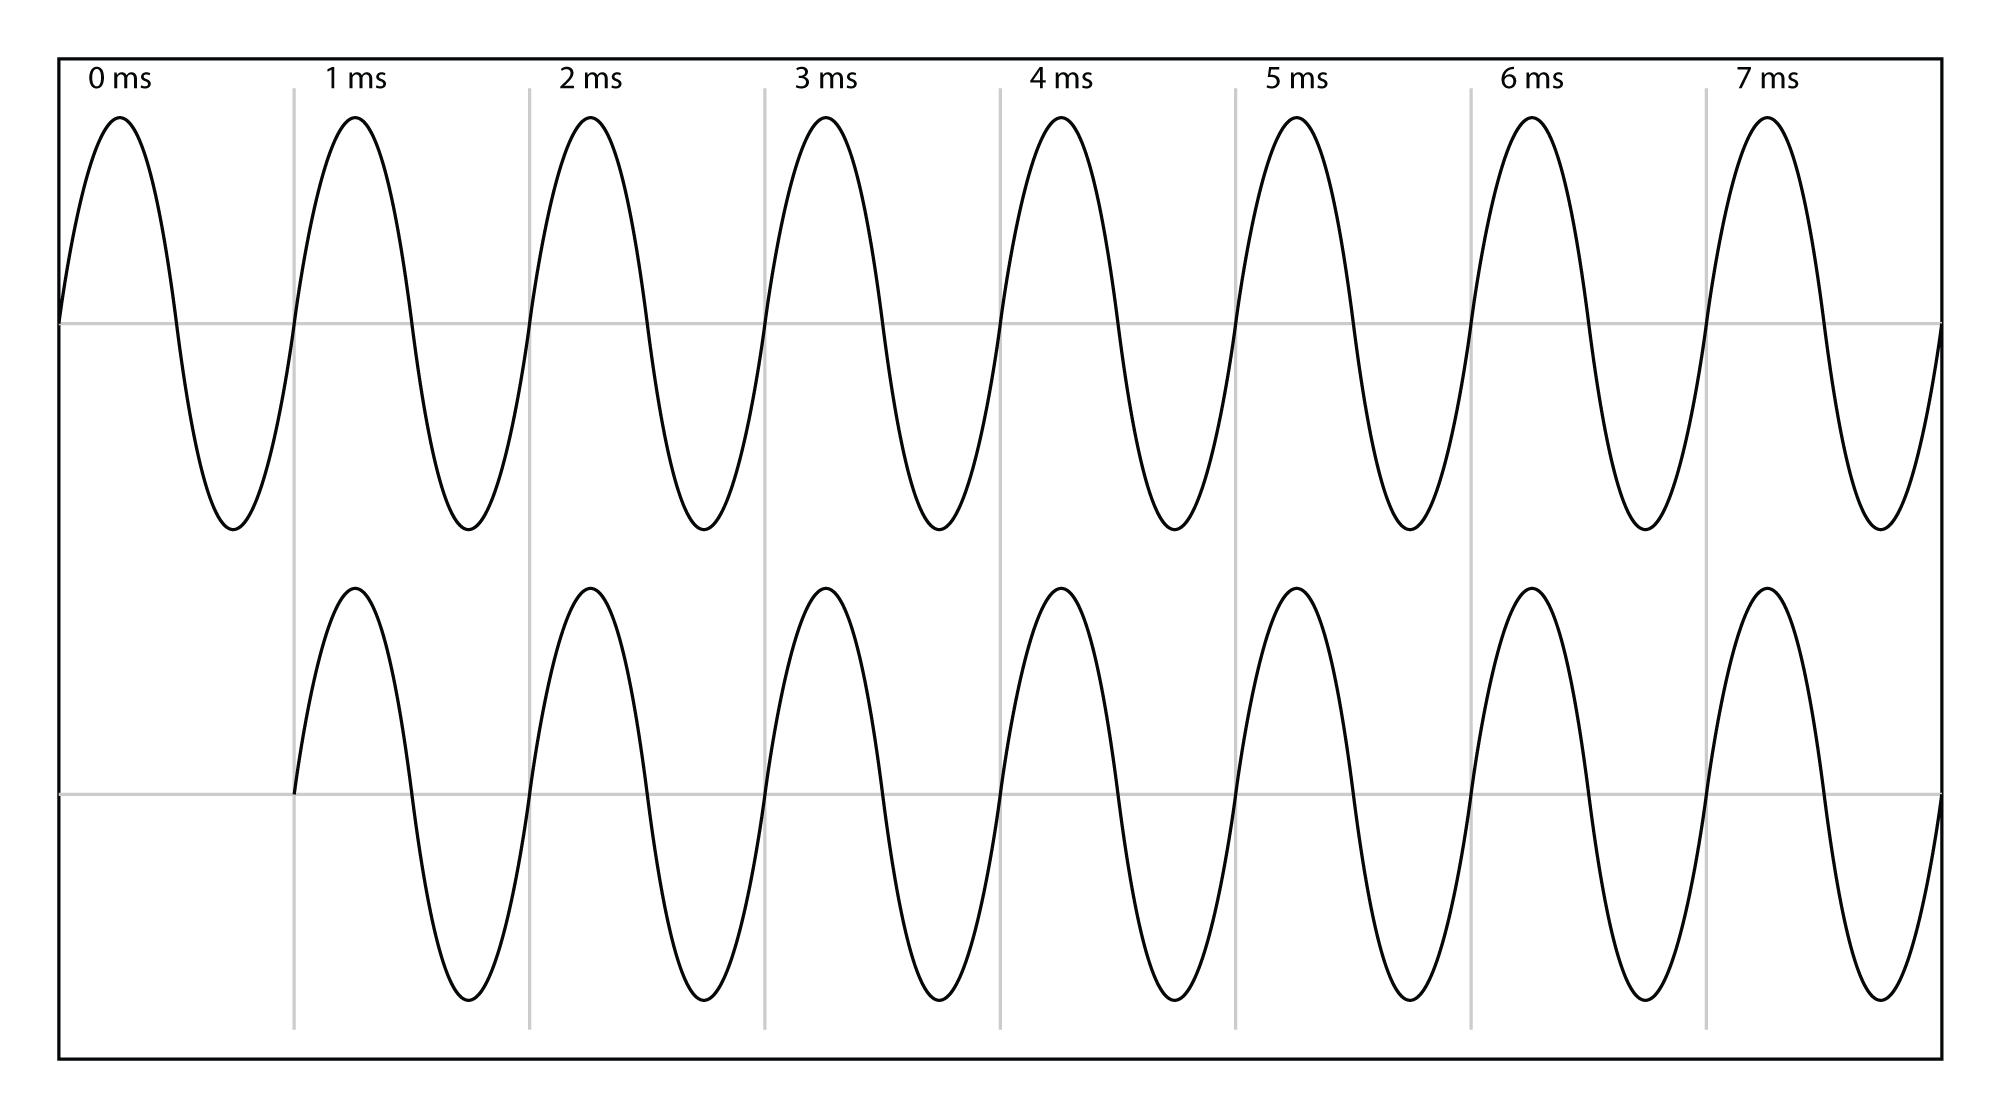 chapter 4 sound perception and acoustics digital sound music 3 Phase Service Panel figure 4 29 phase relationship between two 1000 hz sine waves one millisecond apart